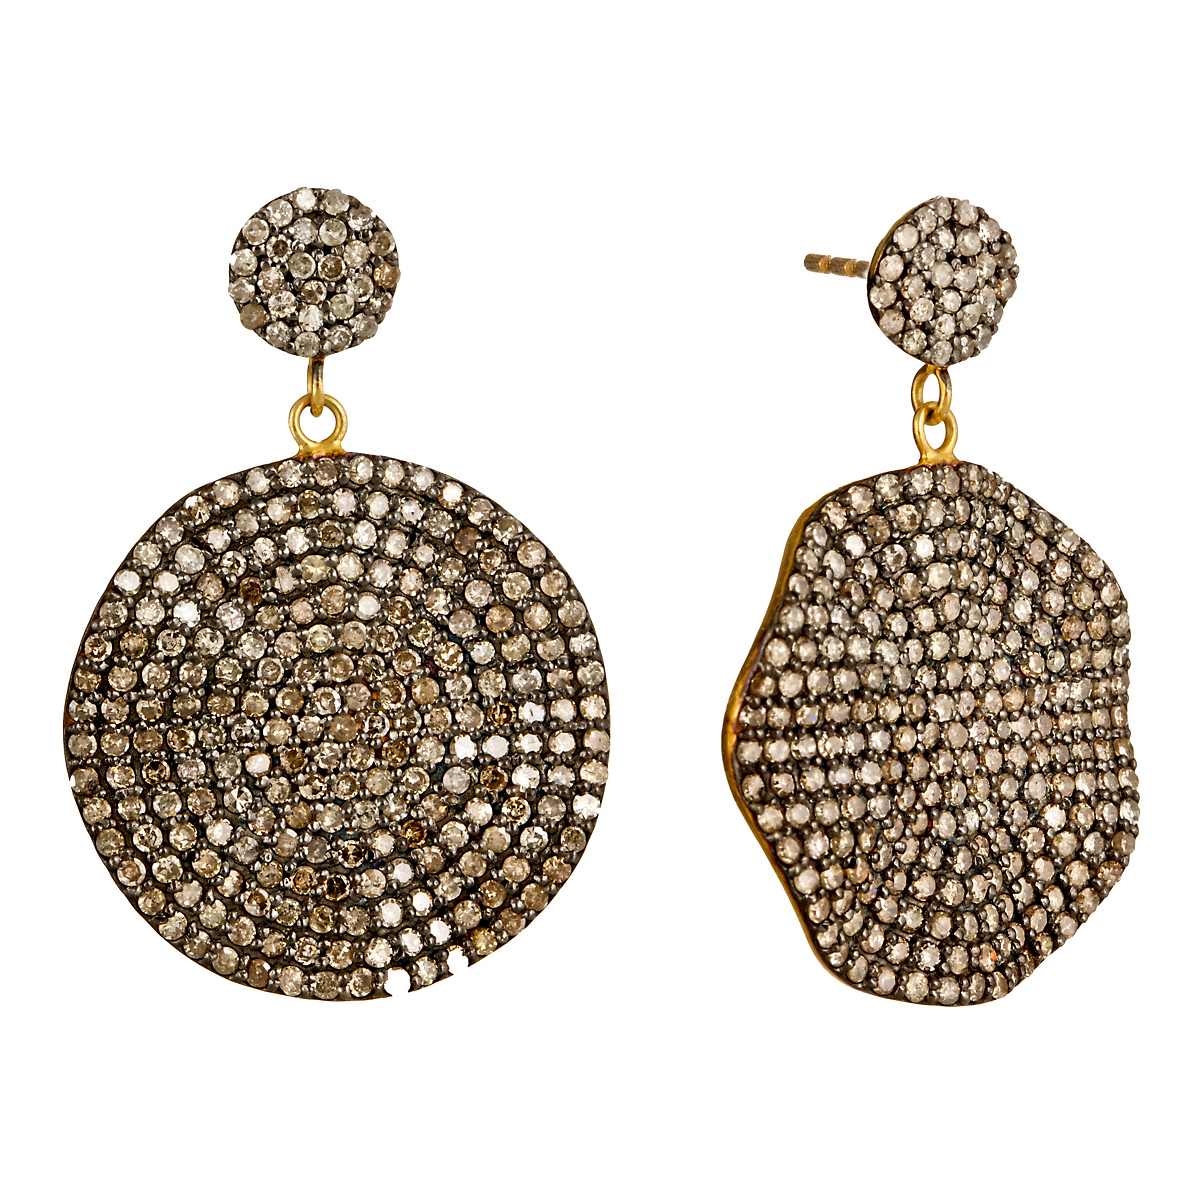 Nikki Baker Lusso Diamond Petale Earrings